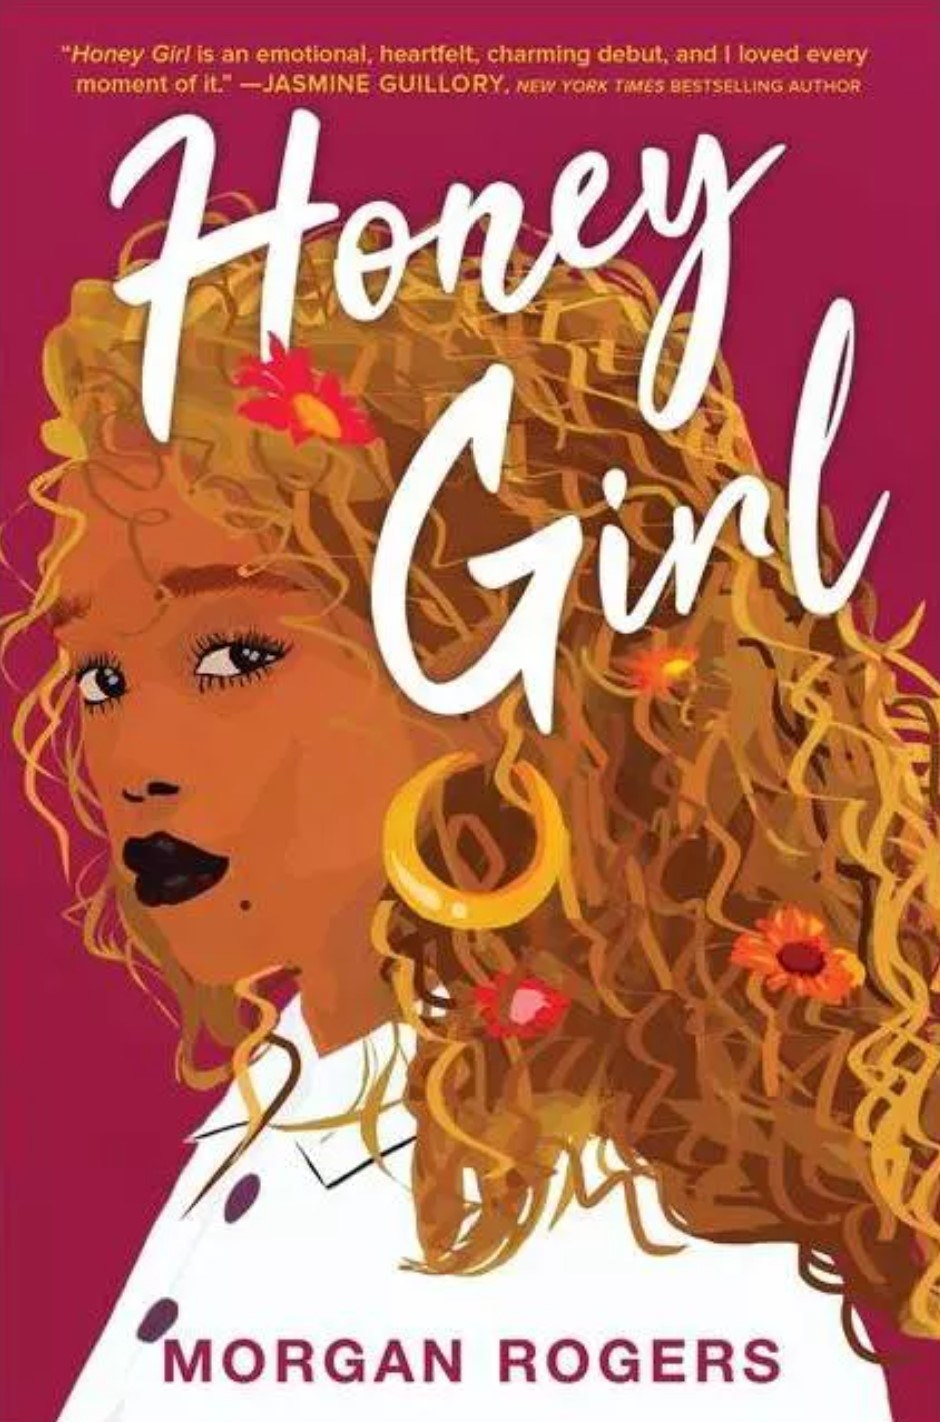 The cover of Honey Girl by Morgan Rogers